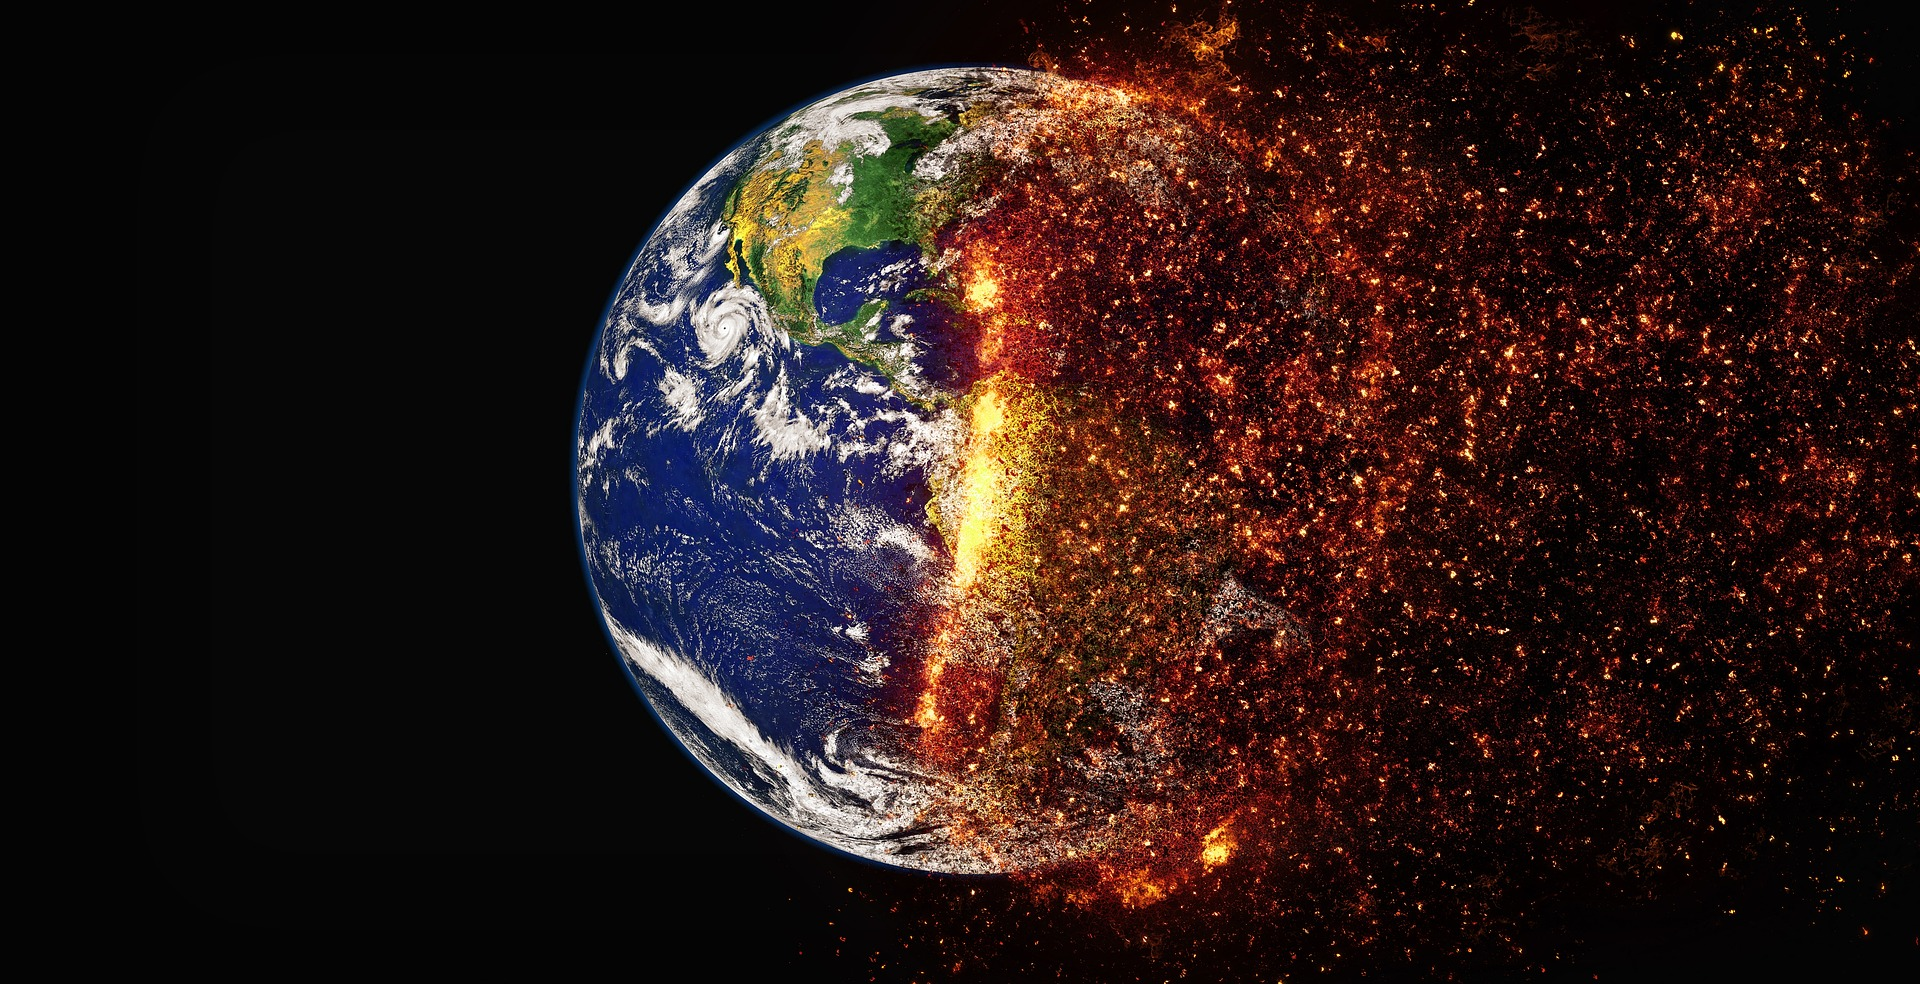 A photo of half the earth burning. Photo courtesy of The Digital Artist on Pixabay.